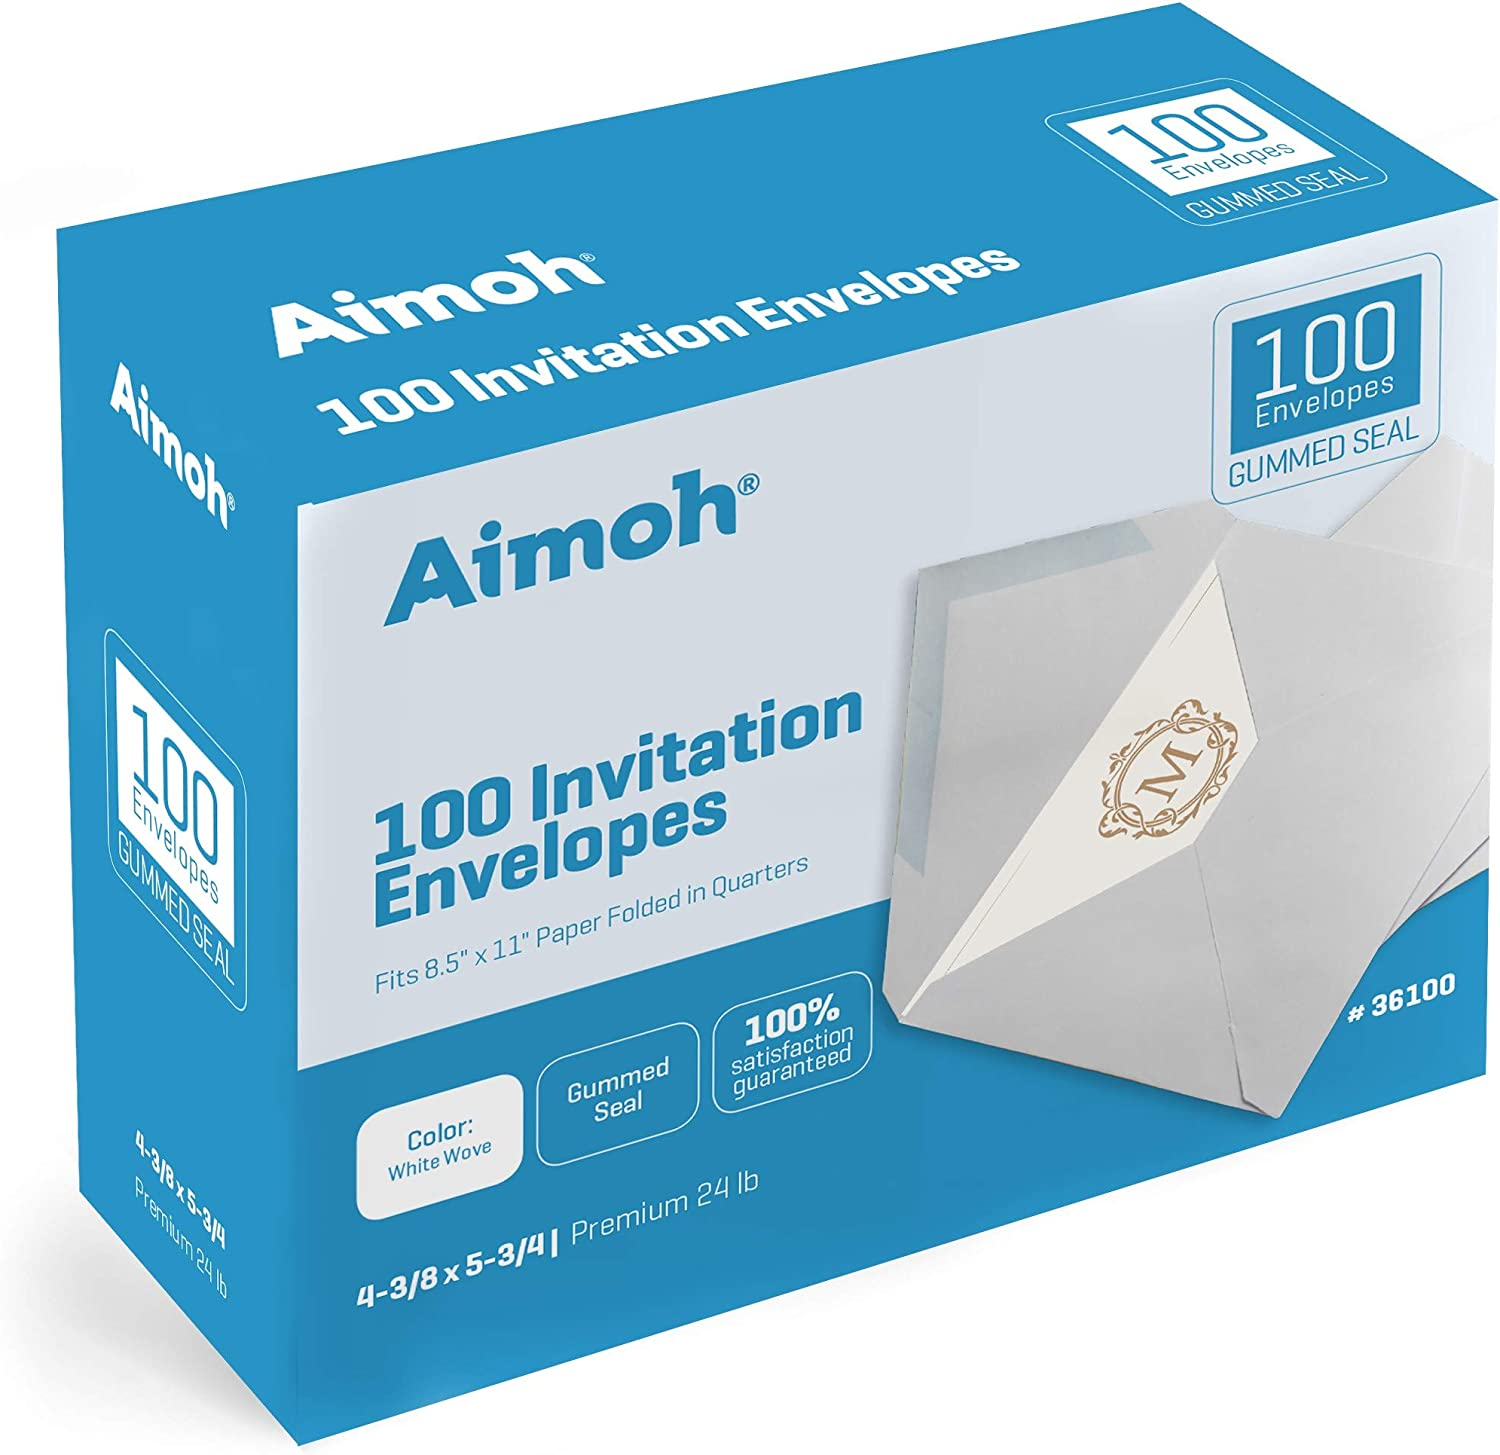 100 White A2 Invitation Envelopes - 4-3/8 X 5-3/4 Inches, 24 lb, White, GUMMED Closure, 100 Envelopes - Ideal for Invitations, Greetings, RSVP, Photo, Wedding Announcement Cards (36100) : Office Products